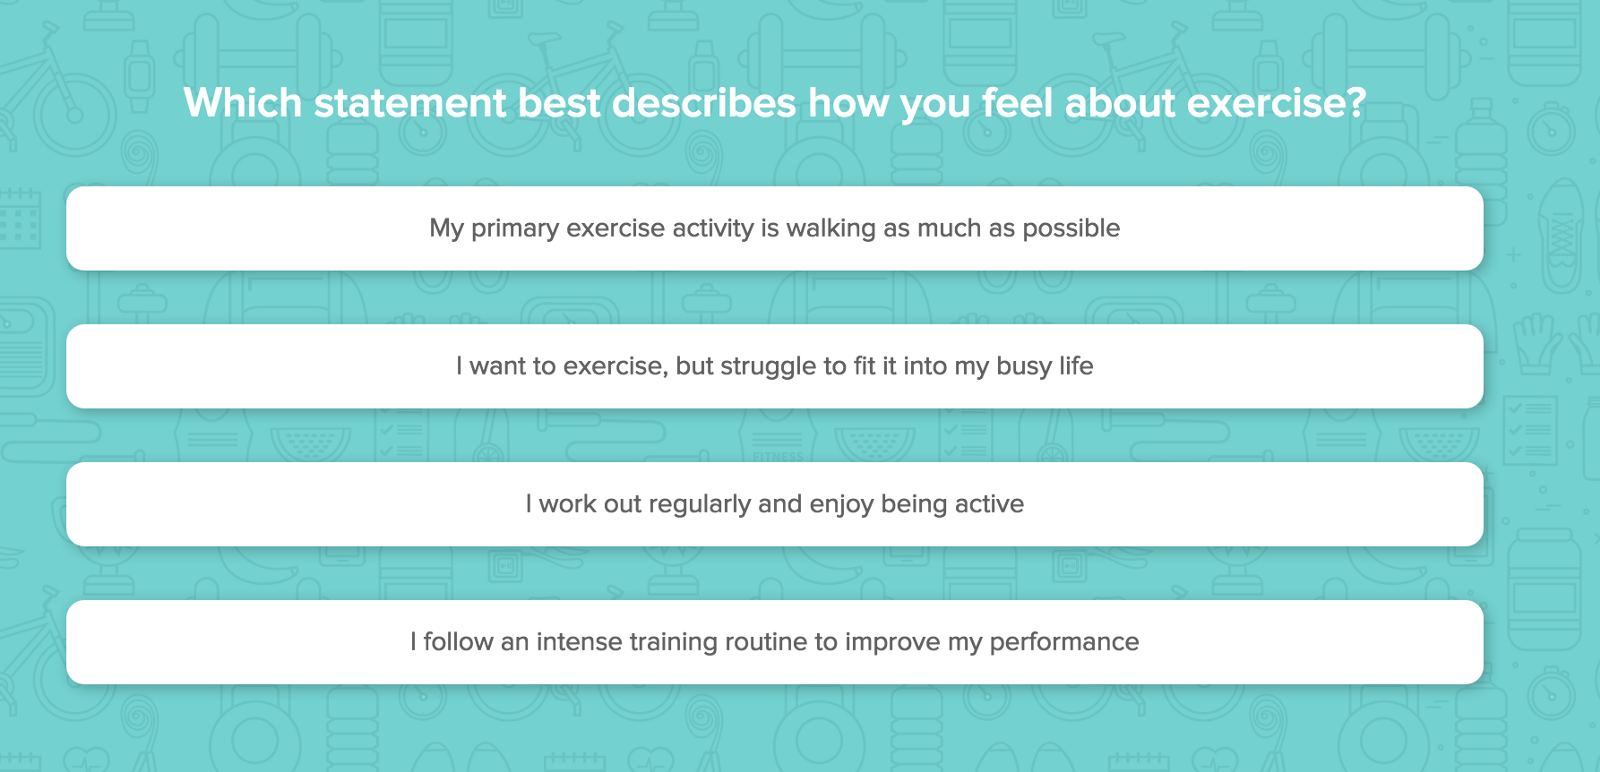 Which statement best describes how you feel about exercise? I dunno, FitBit, this question doesn't really jive with me.